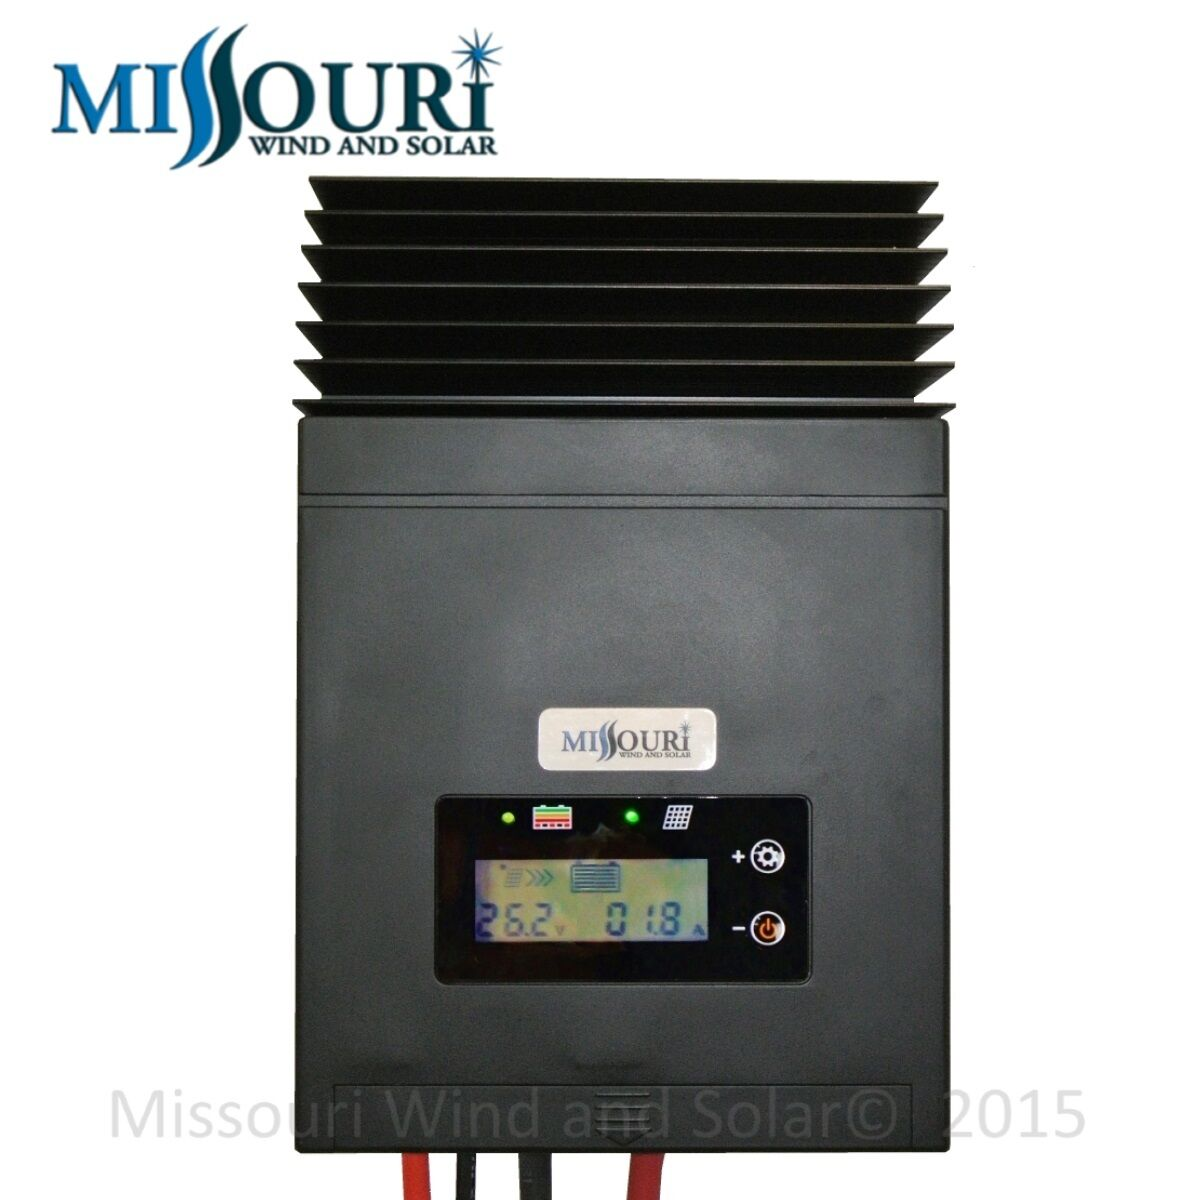 50 Amp Mppt Solar Charge Controller 12 24 Volt Panels Pv Ebay Pwm 20 For Panel Missouri Wind And